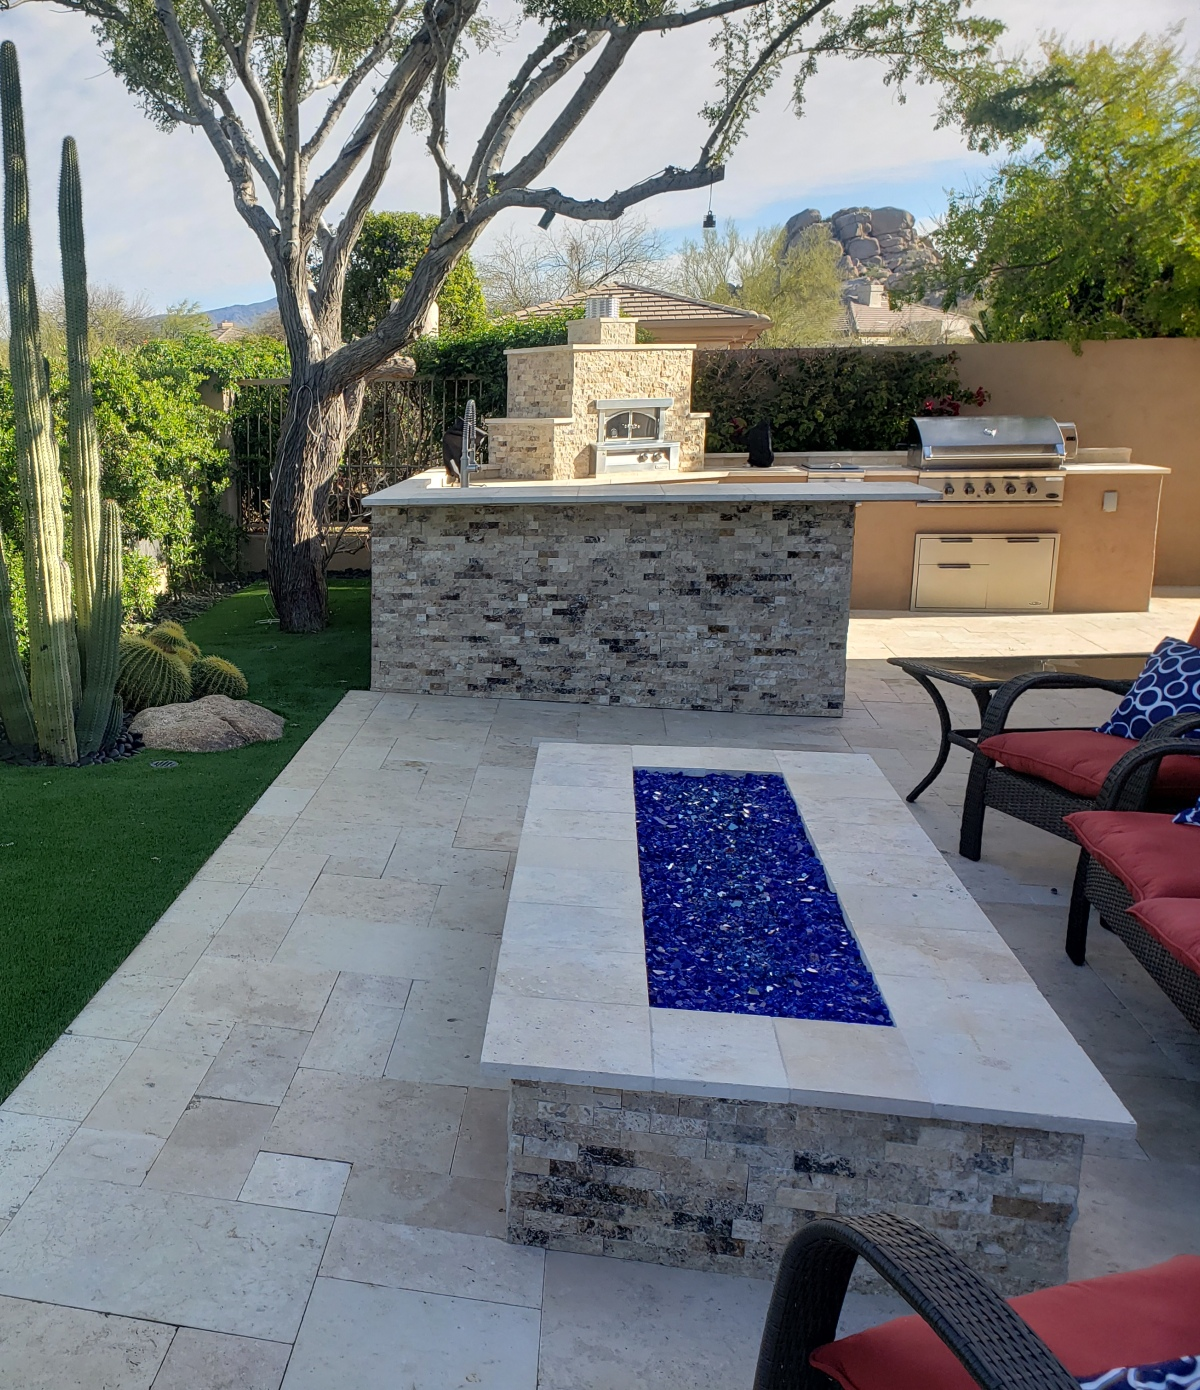 Smooth and split-face travertine create a beautiful outdoor fire pit and outdoor kitchen. Scottsdale clients also included a pizza oven in the new outdoor kitchen.